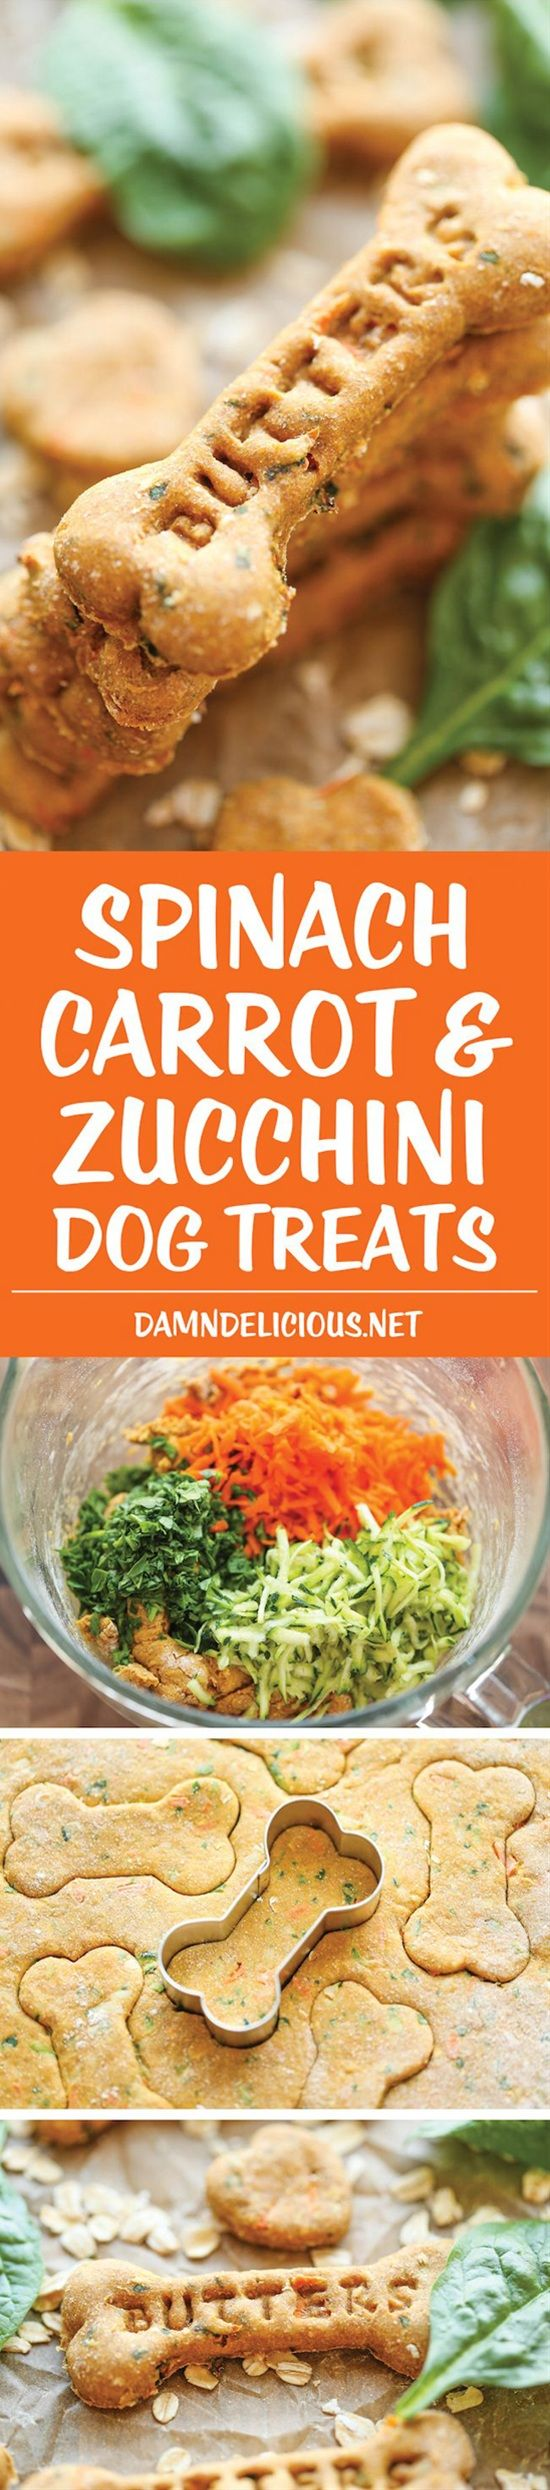 Spinach, Carrot and Zucchini Treats